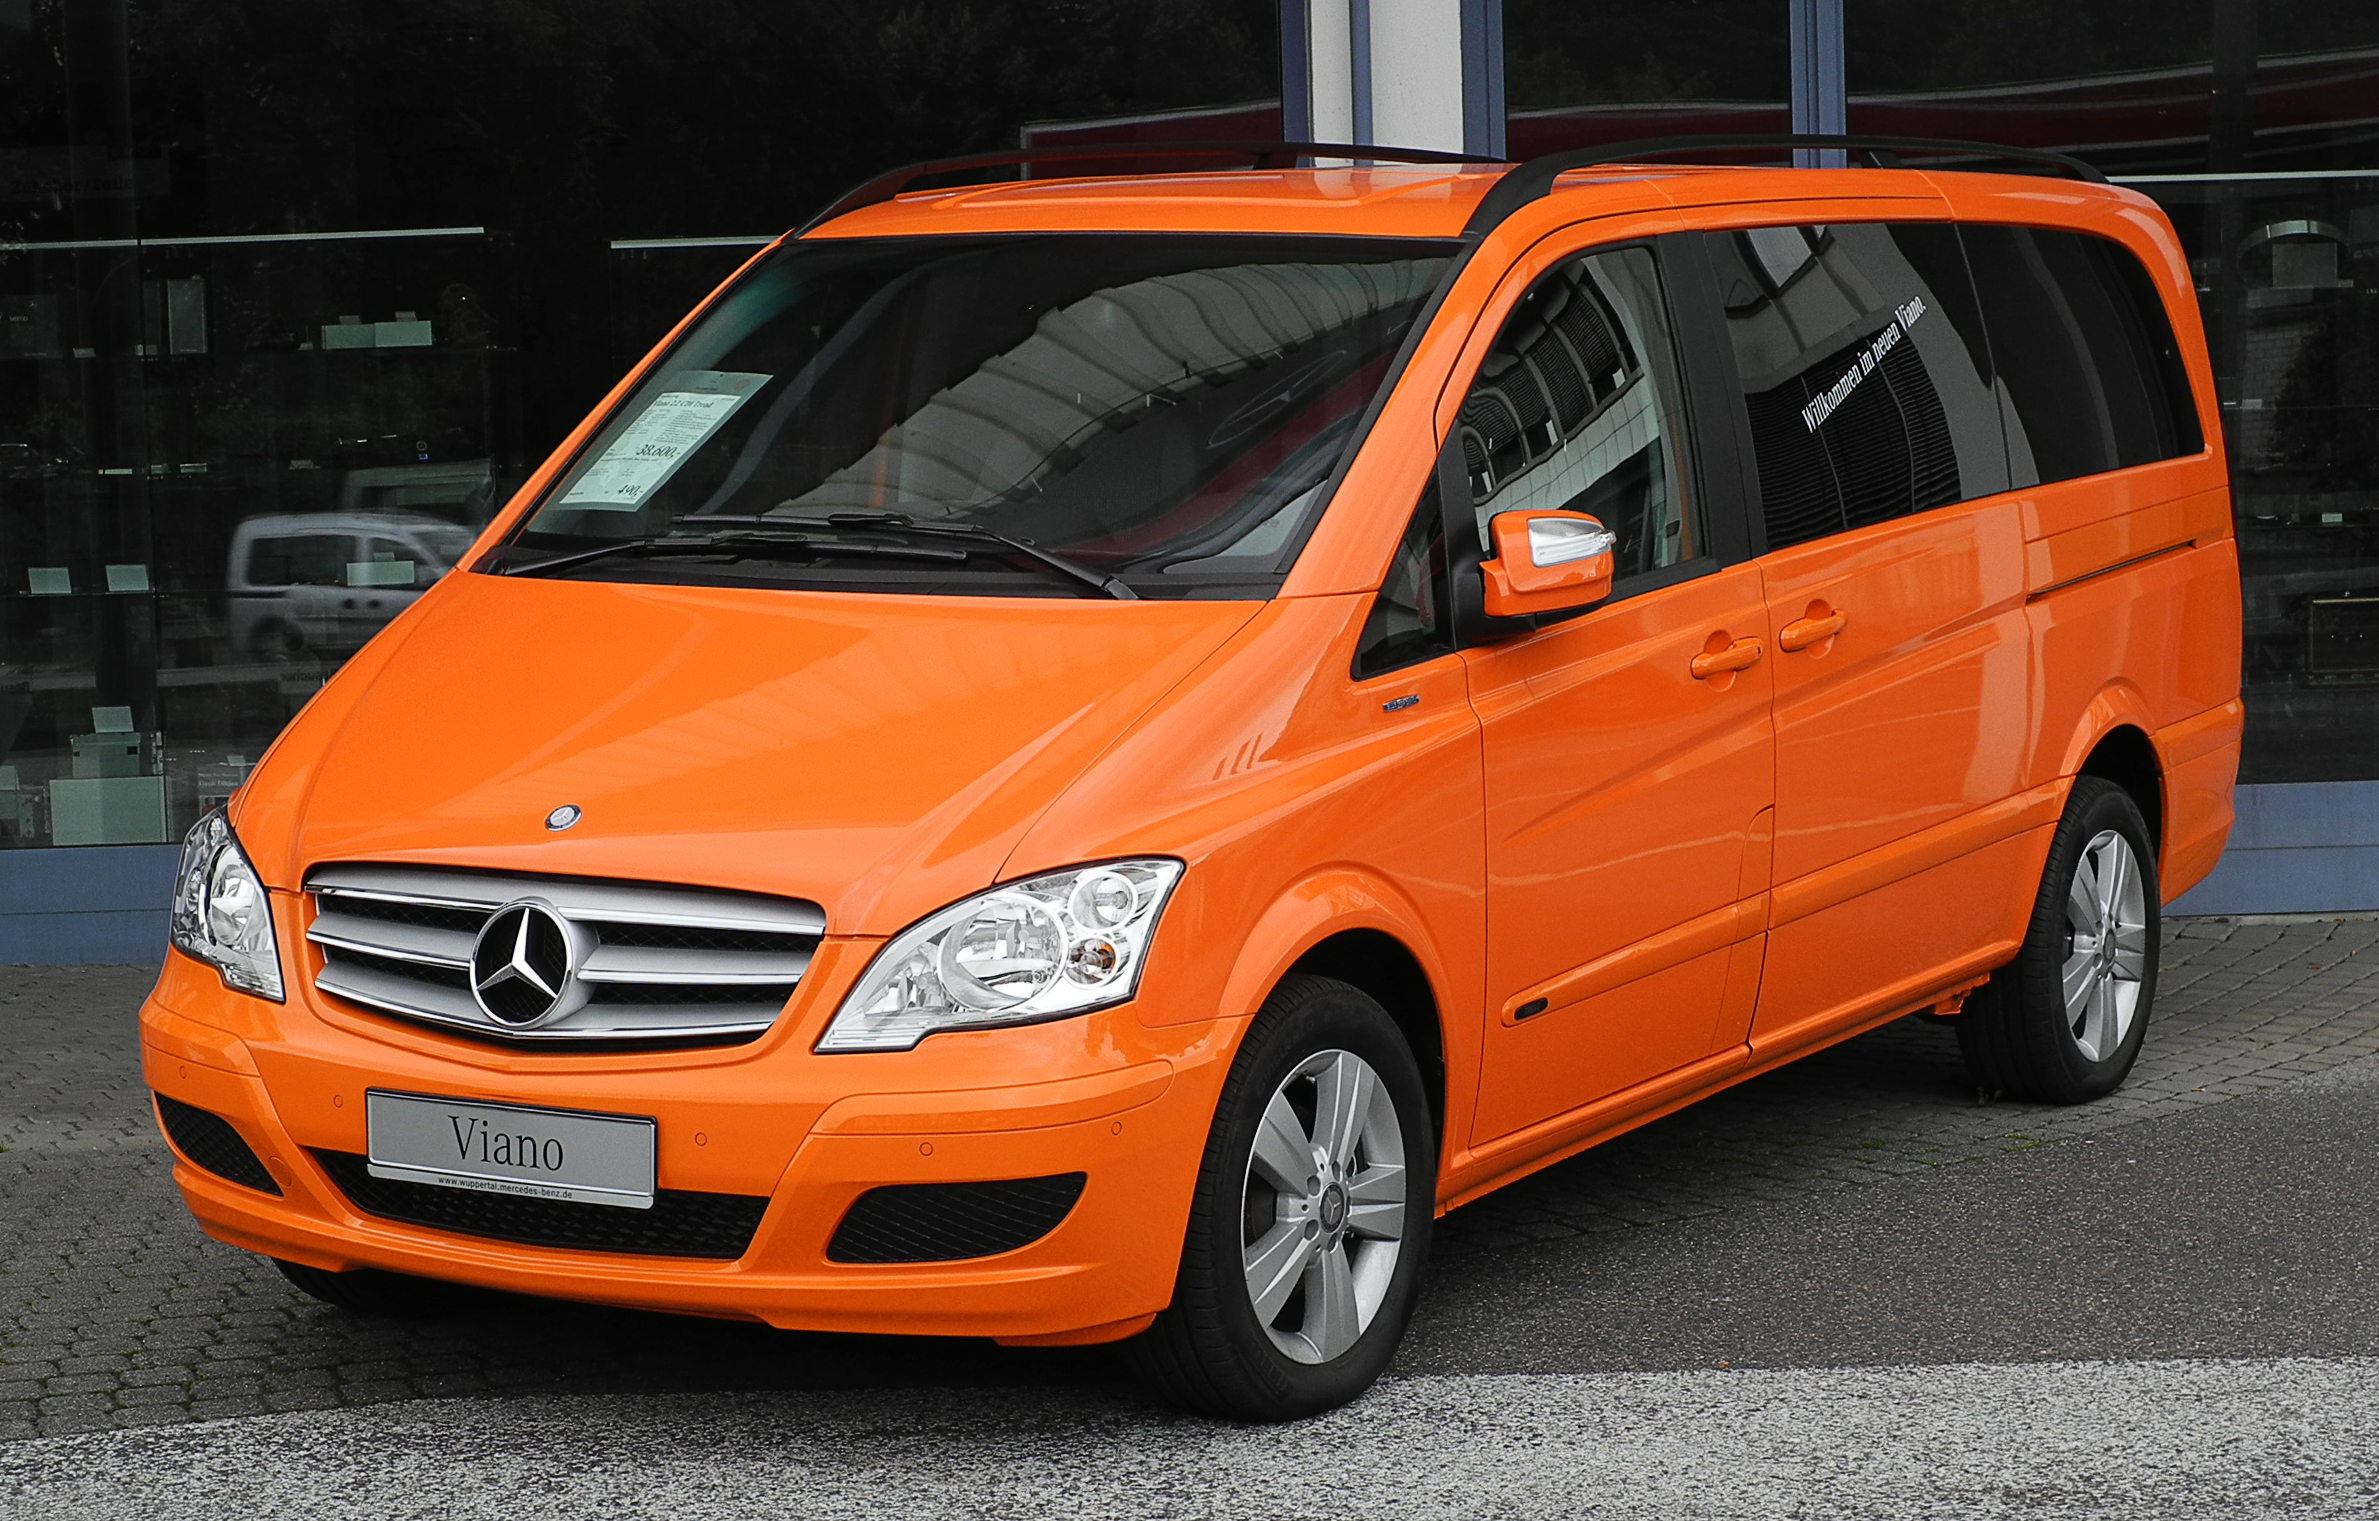 file:mercedes-benz viano lang cdi 2.2 blueefficiency trend (v 639